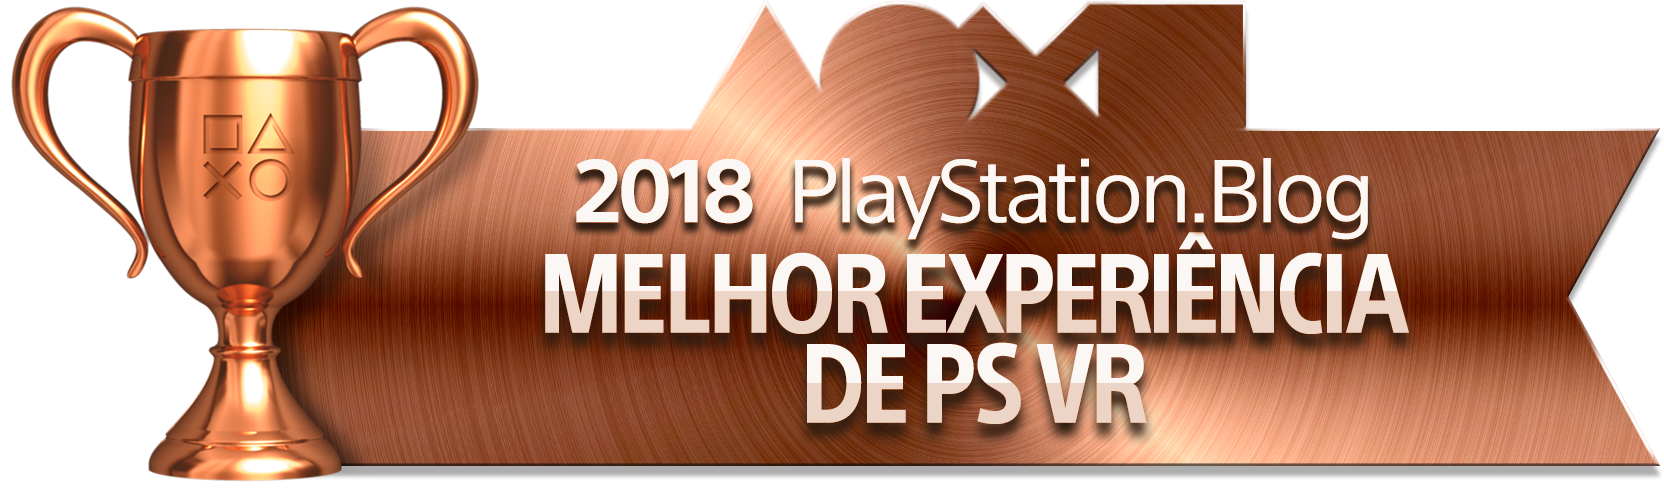 Best PS VR Experience - Bronze